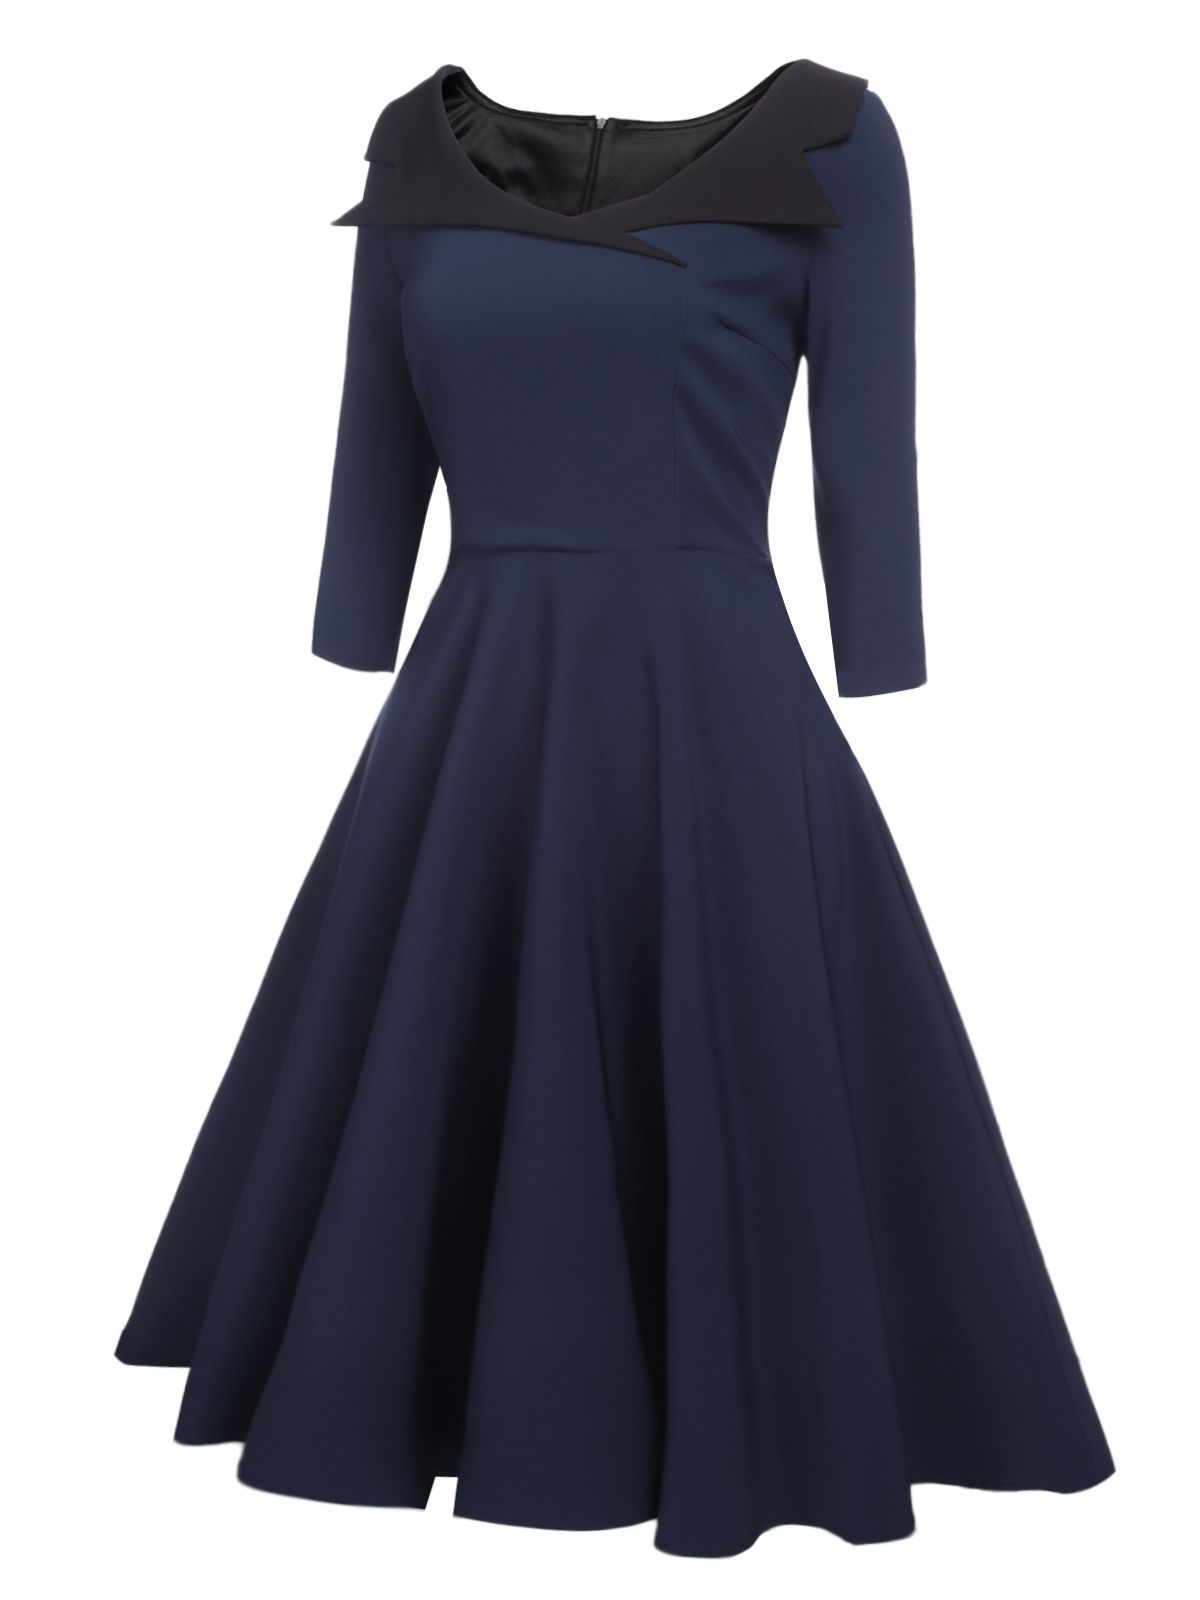 1950s Collar Half Sleeve Swing Dress